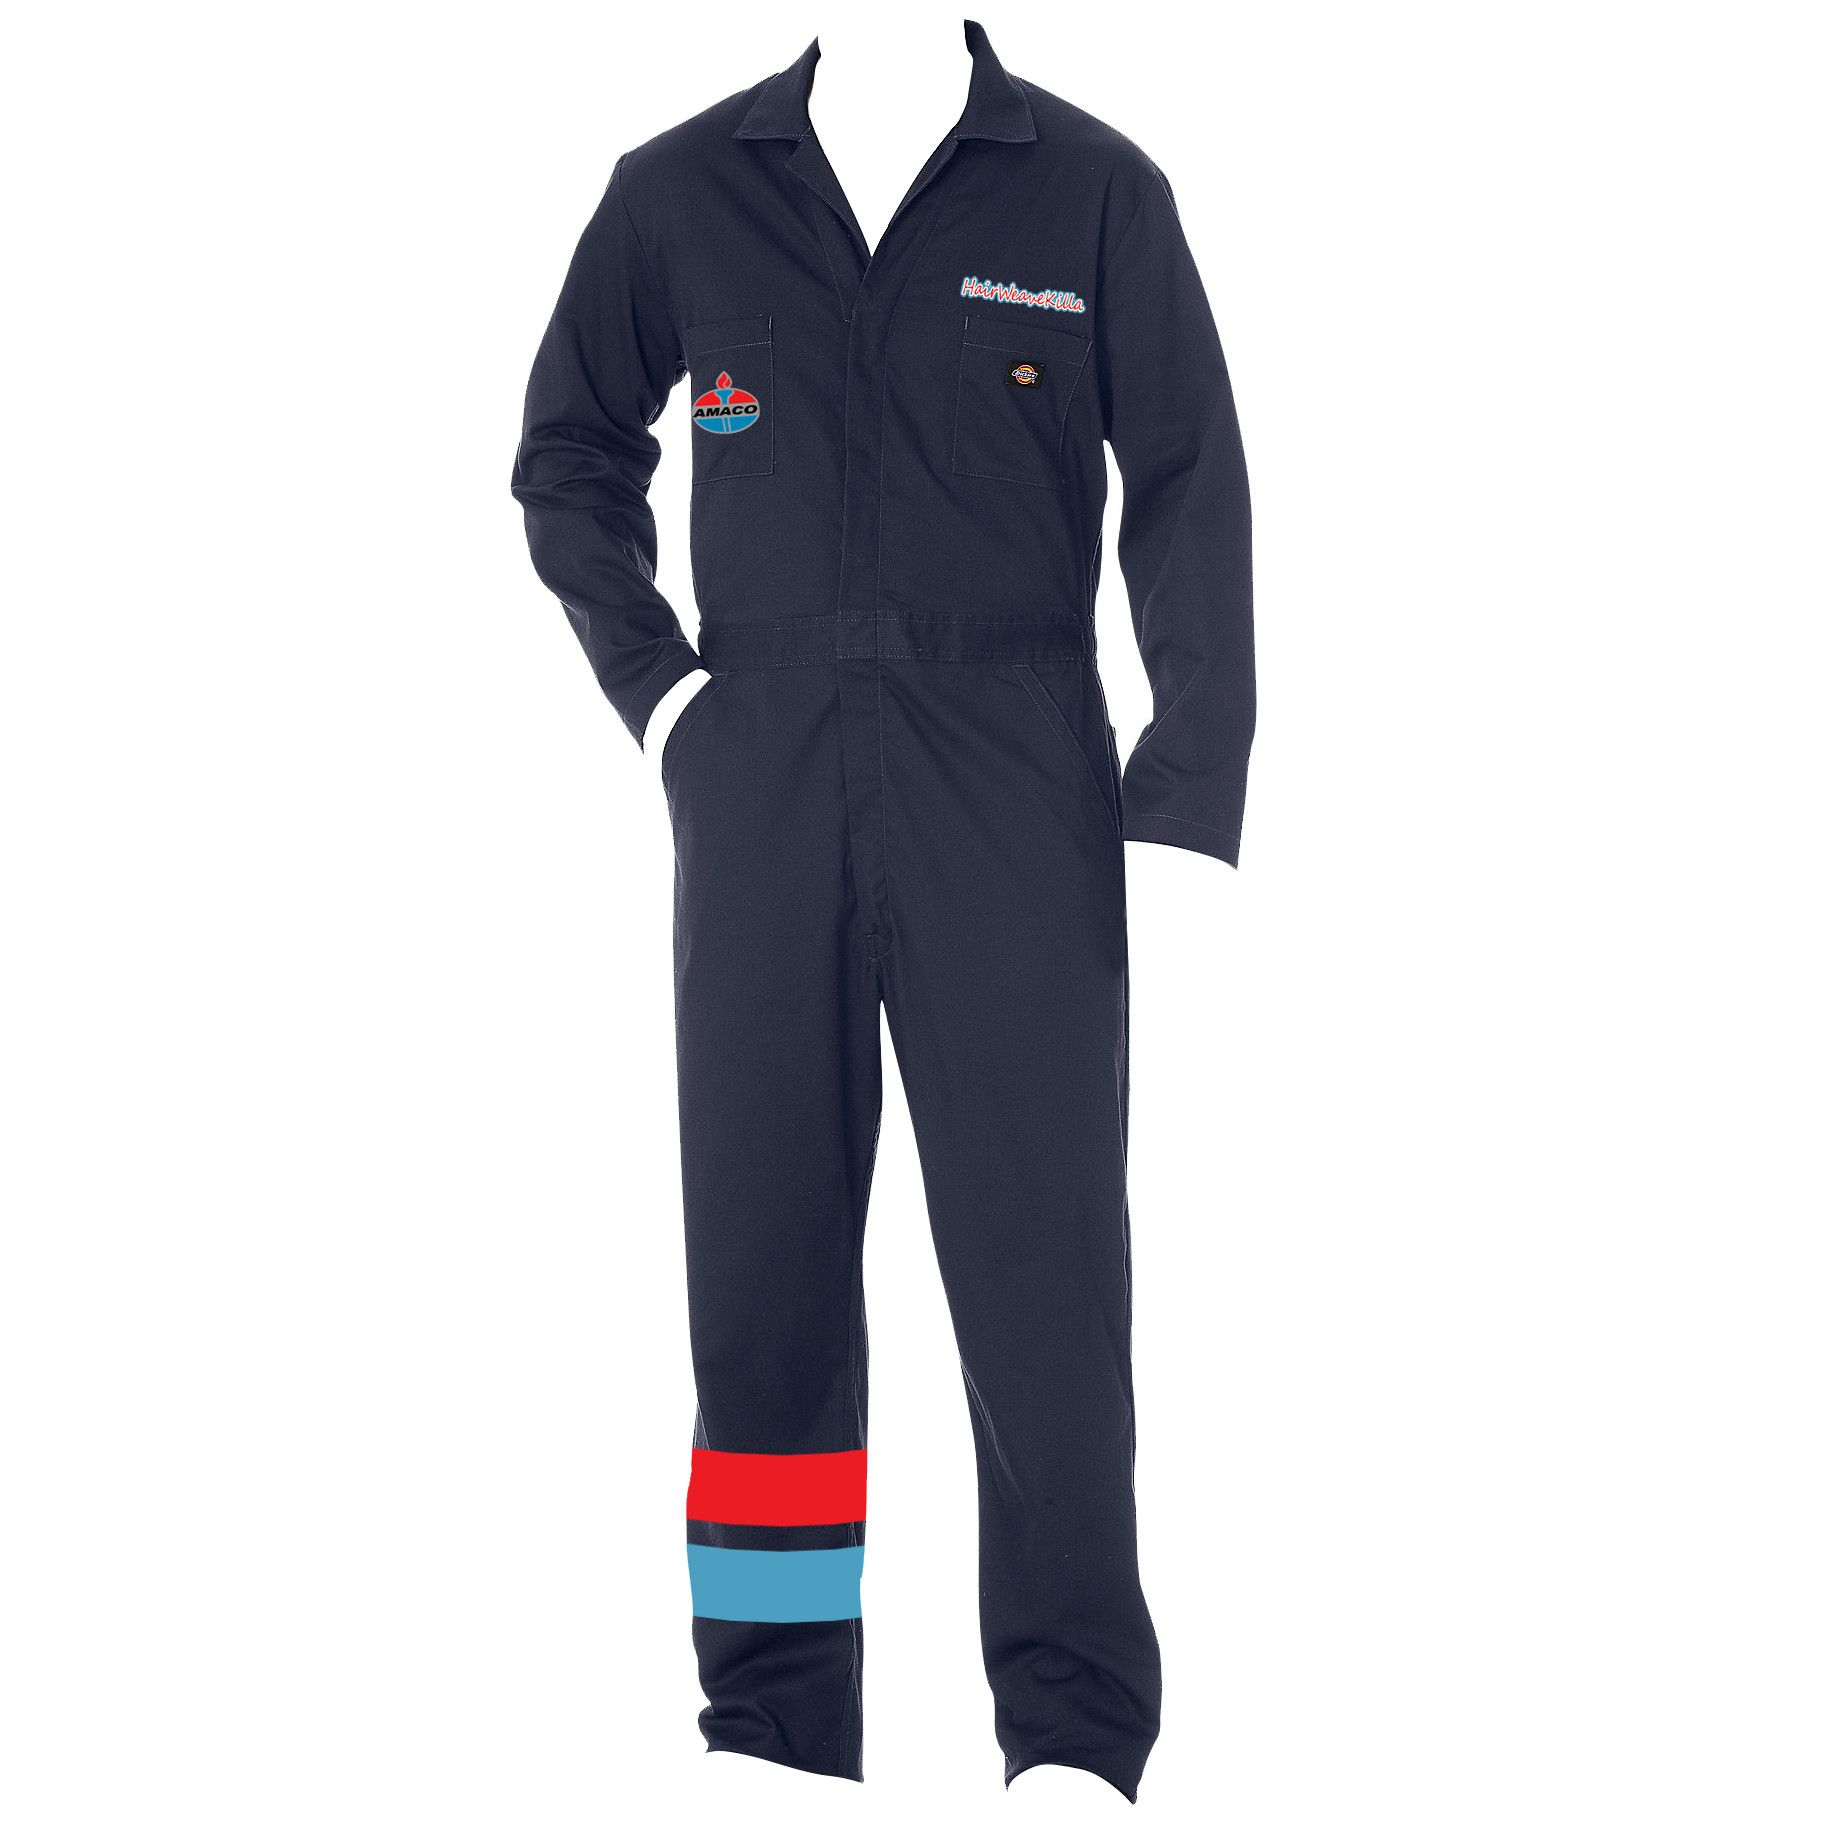 2 chainz merch amaco trap suit mens coveralls mens on cheap insulated coveralls for men id=57402